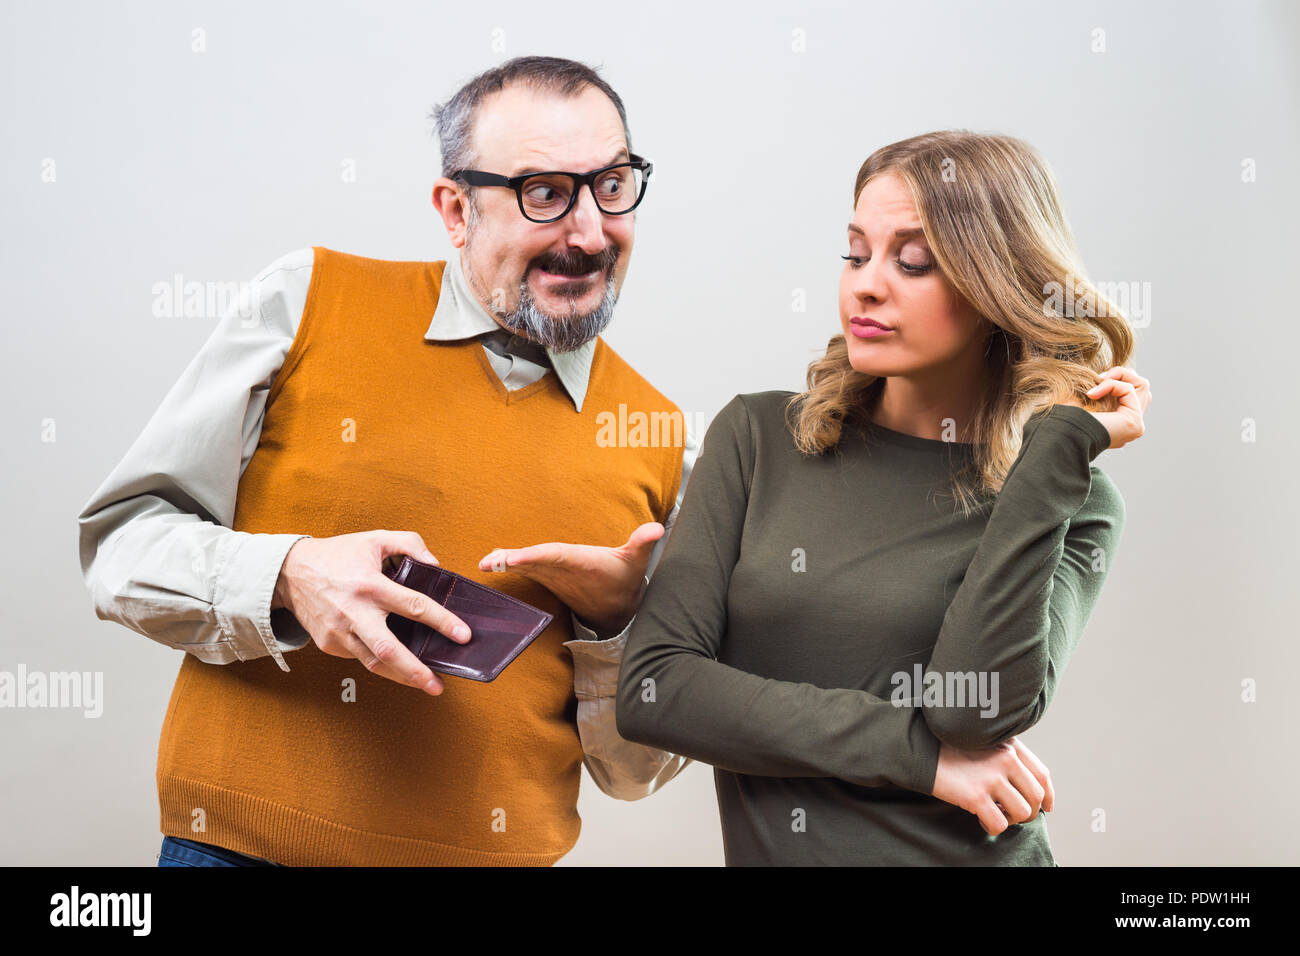 Nerdy man is trying to get attention from a beautiful woman by showing her his wallet full of money but she is still not interested. - Stock Image